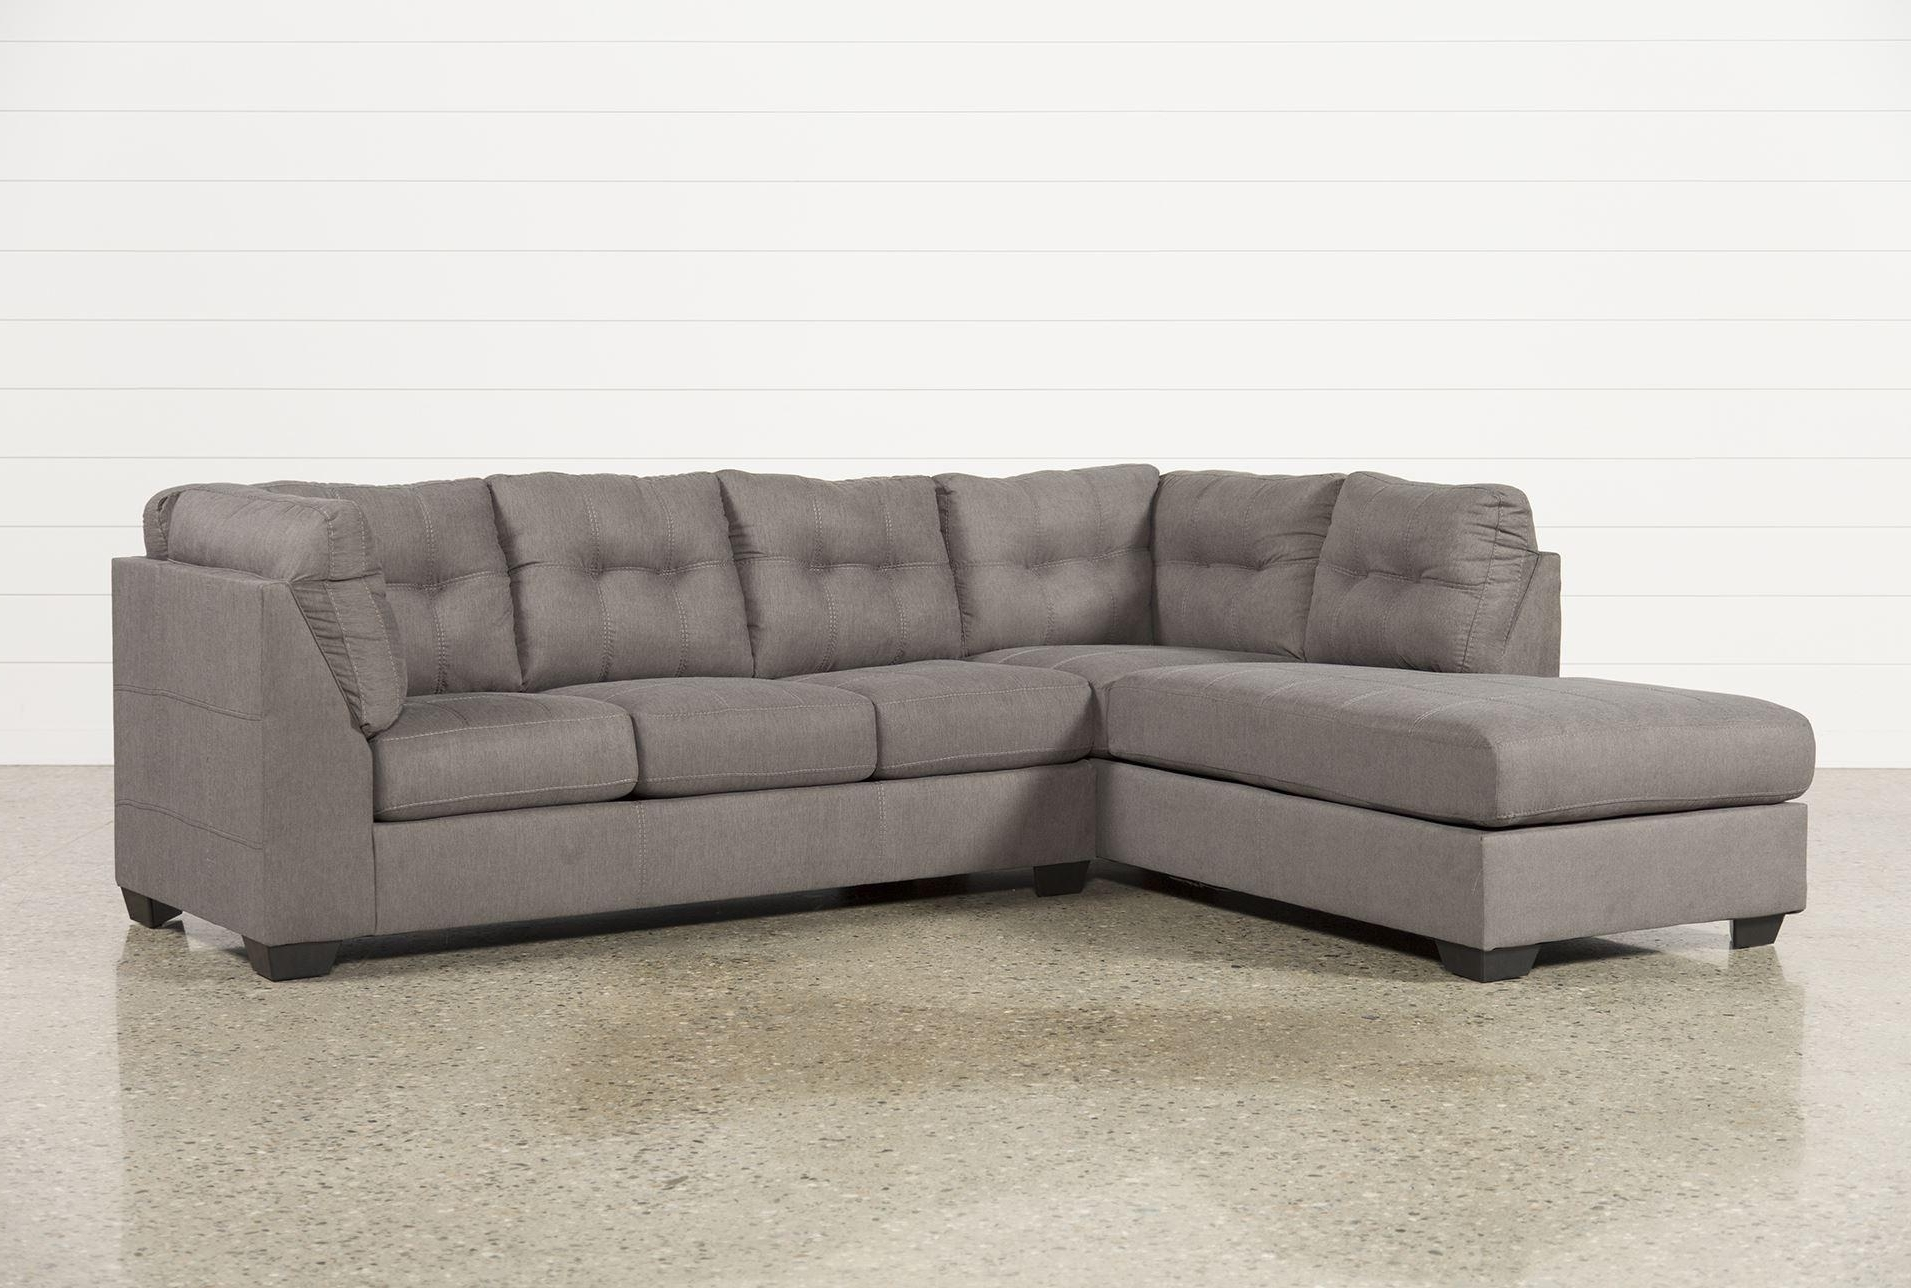 Gray Sectional Sofa With Chaise Lounge (View 7 of 15)